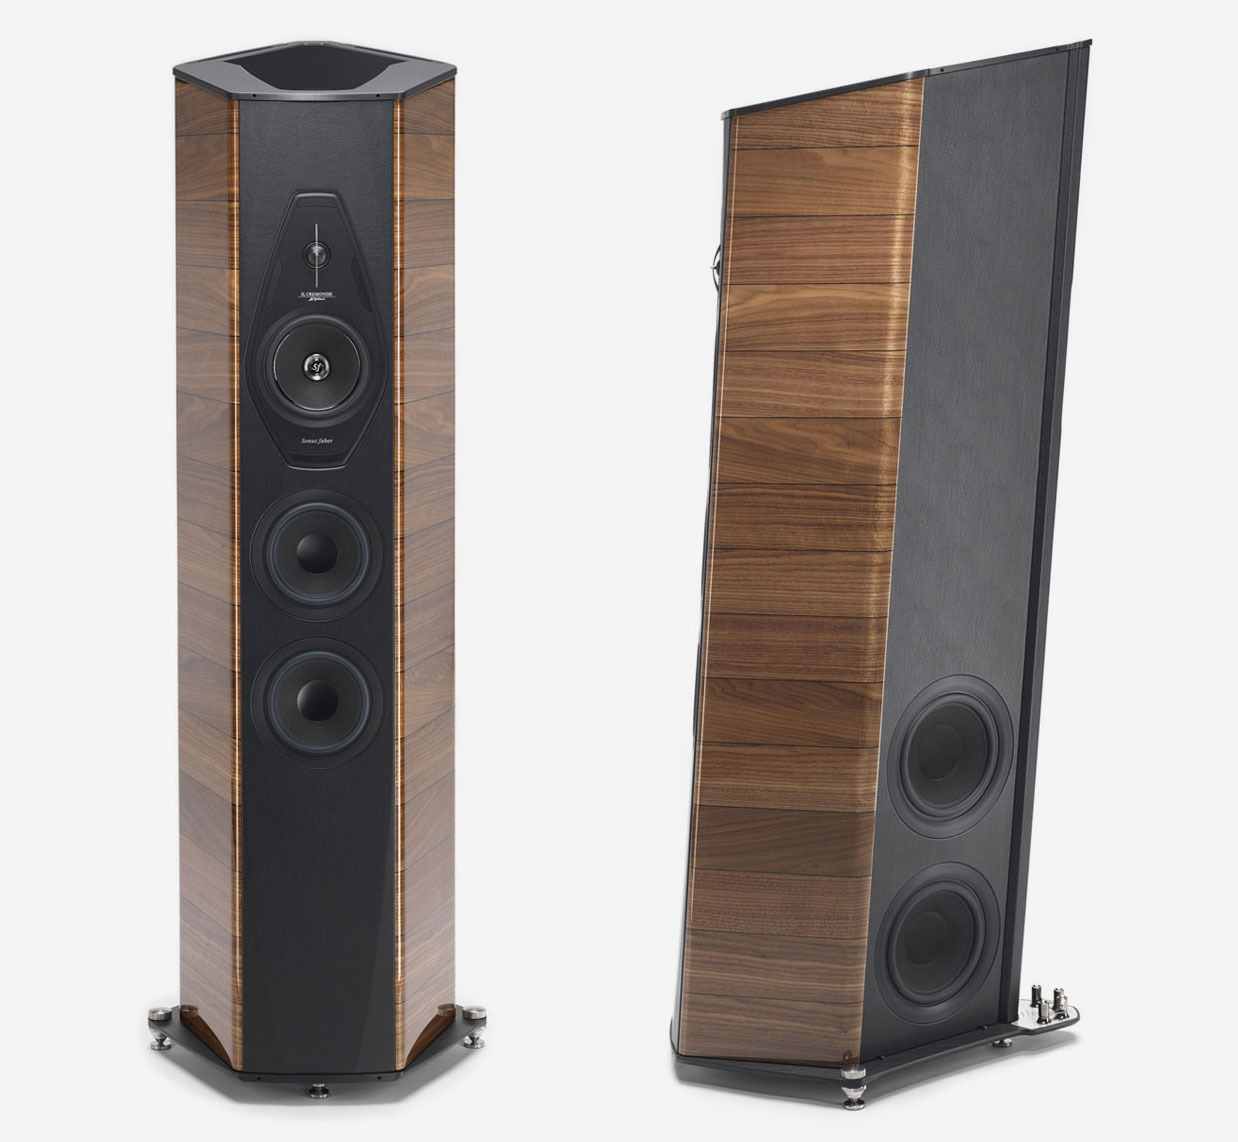 Specifications Sonus faber IL Cremonese walnut